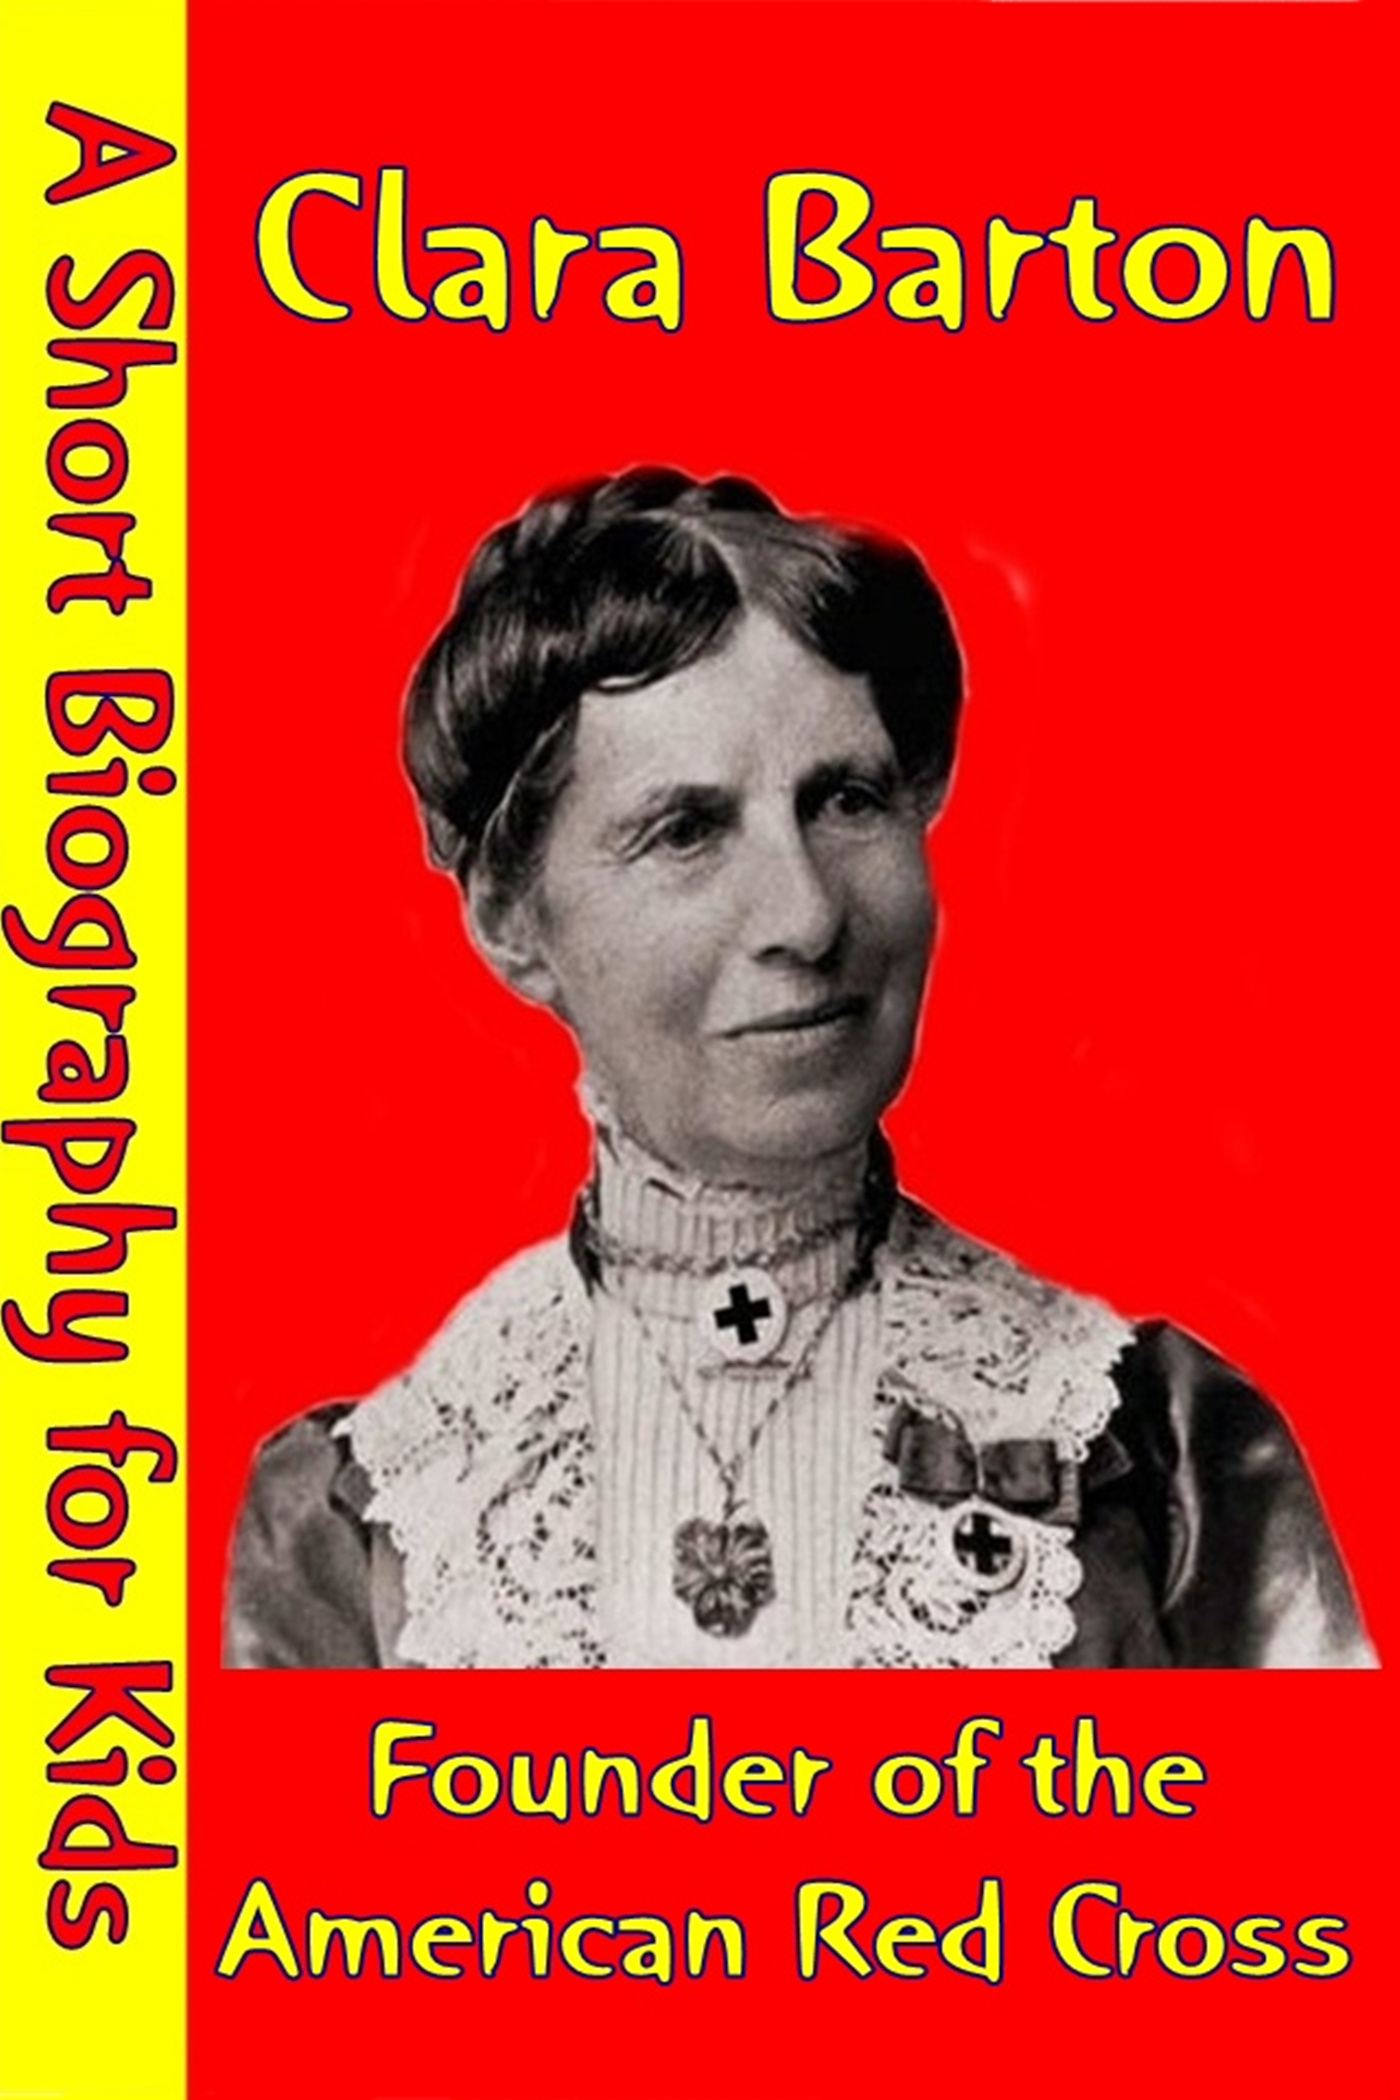 Best Children's Biographies - Clara Barton : Founder of the American Red Cross